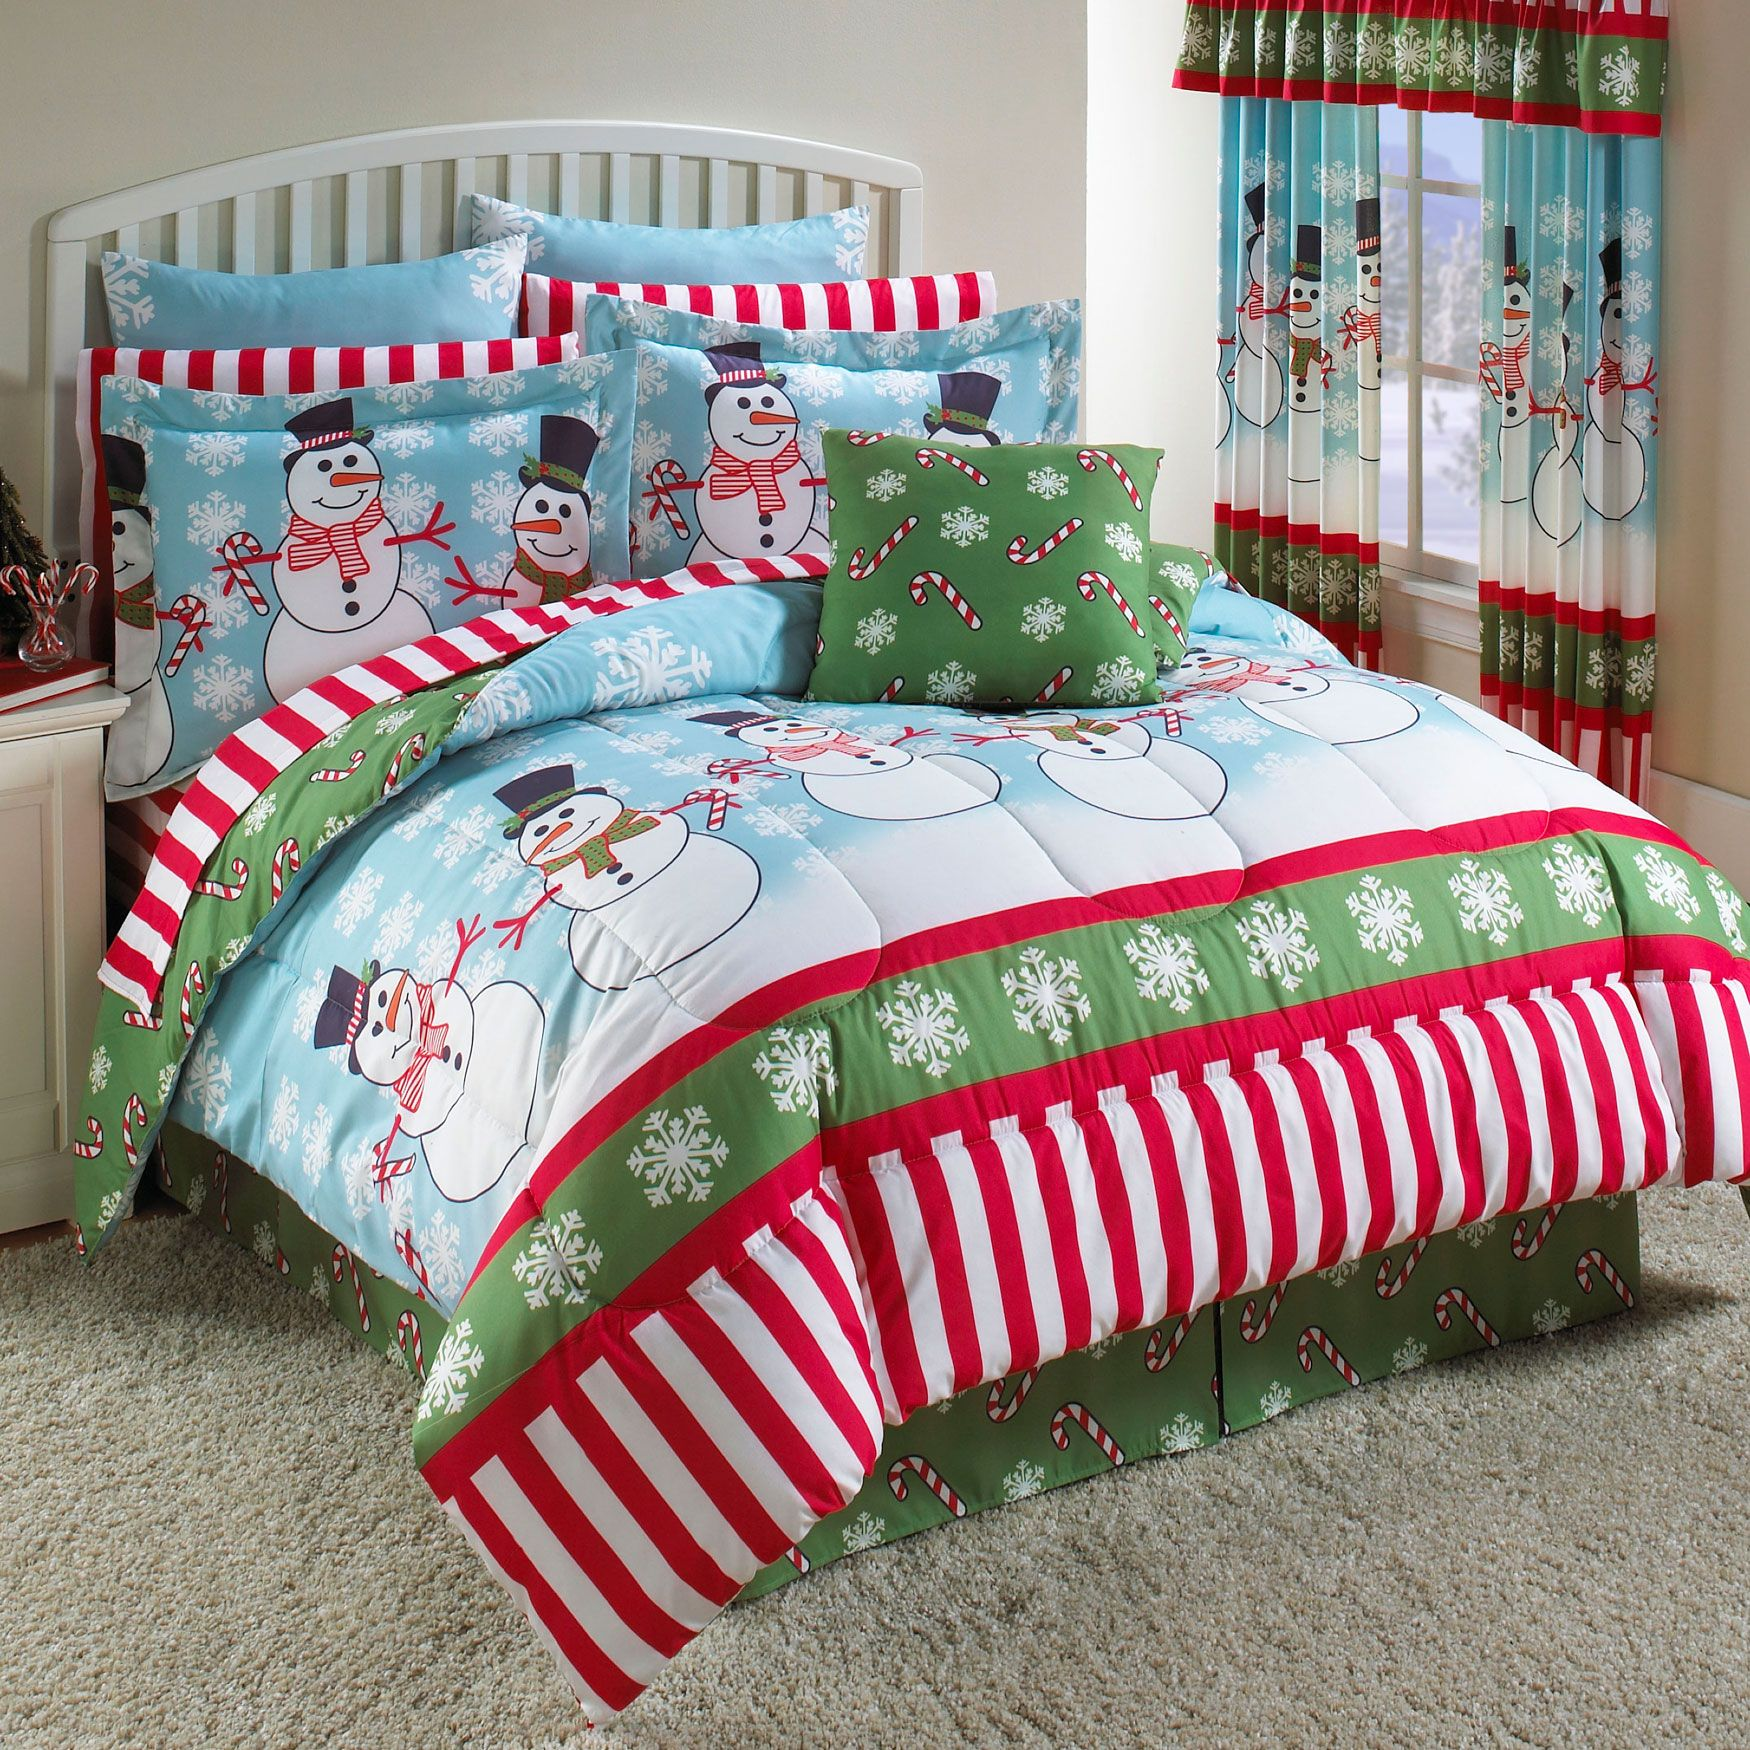 Christmas bedding for kids | Oh so cozy :) | Pinterest | Christmas ...